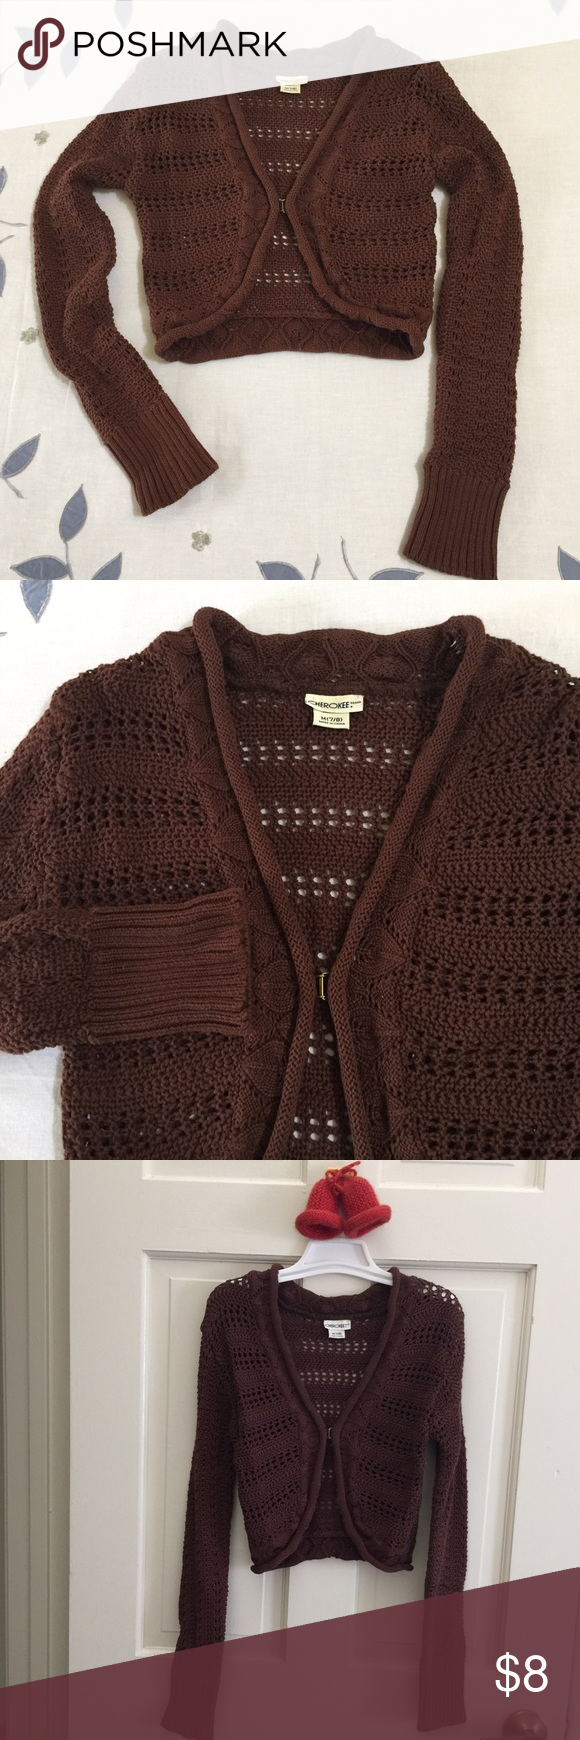 Adorable knit sweater shrug Get this cute brown knit sweater for ...